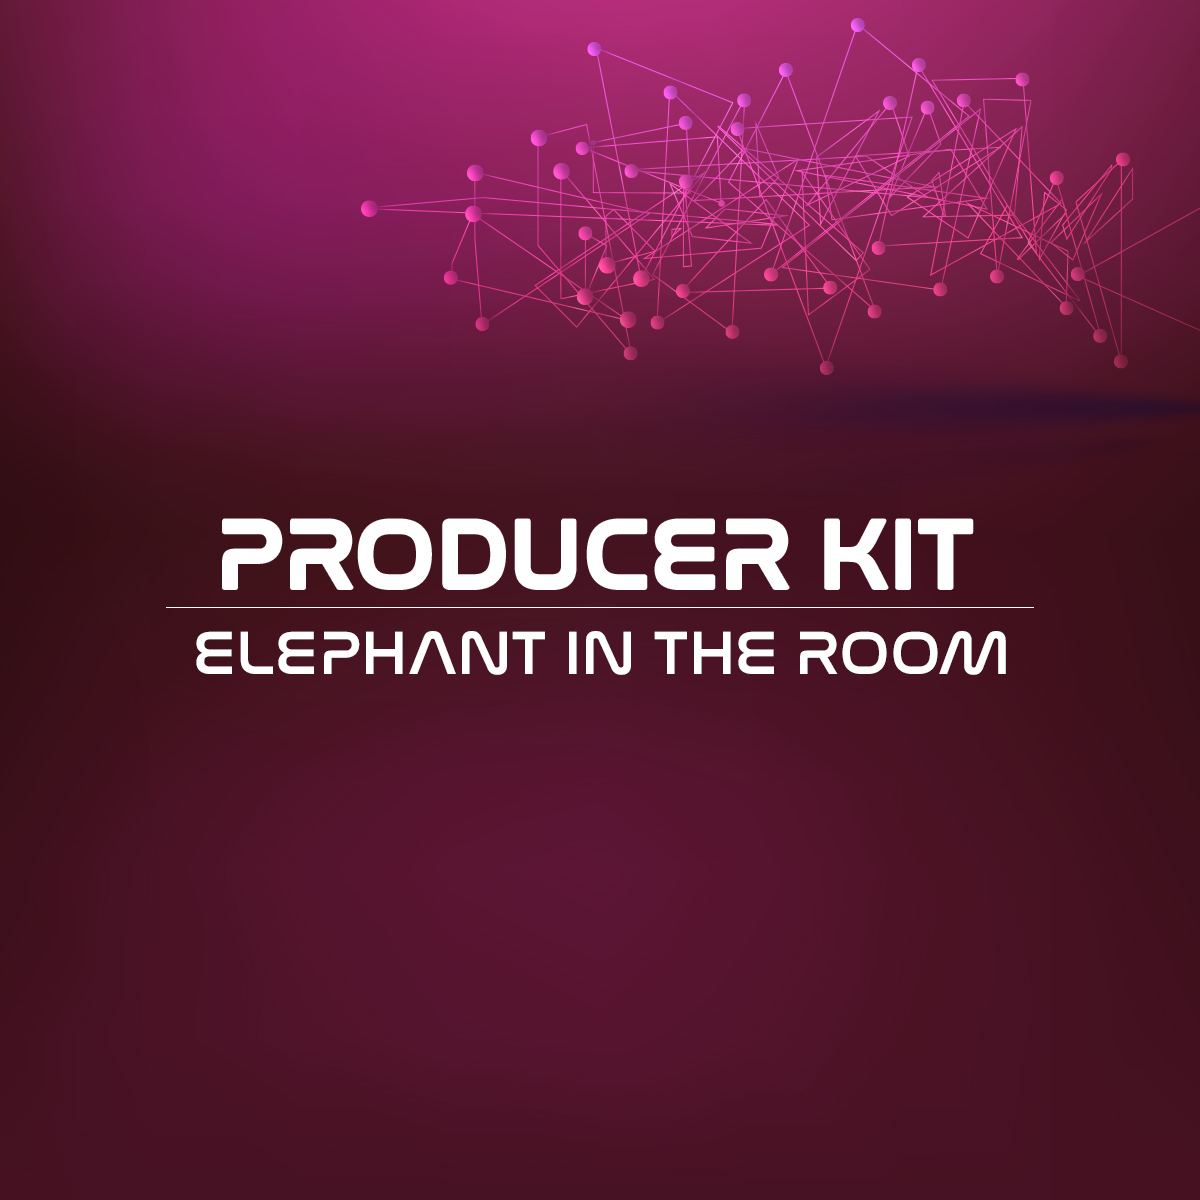 Elephant in the Room - Producer Kit